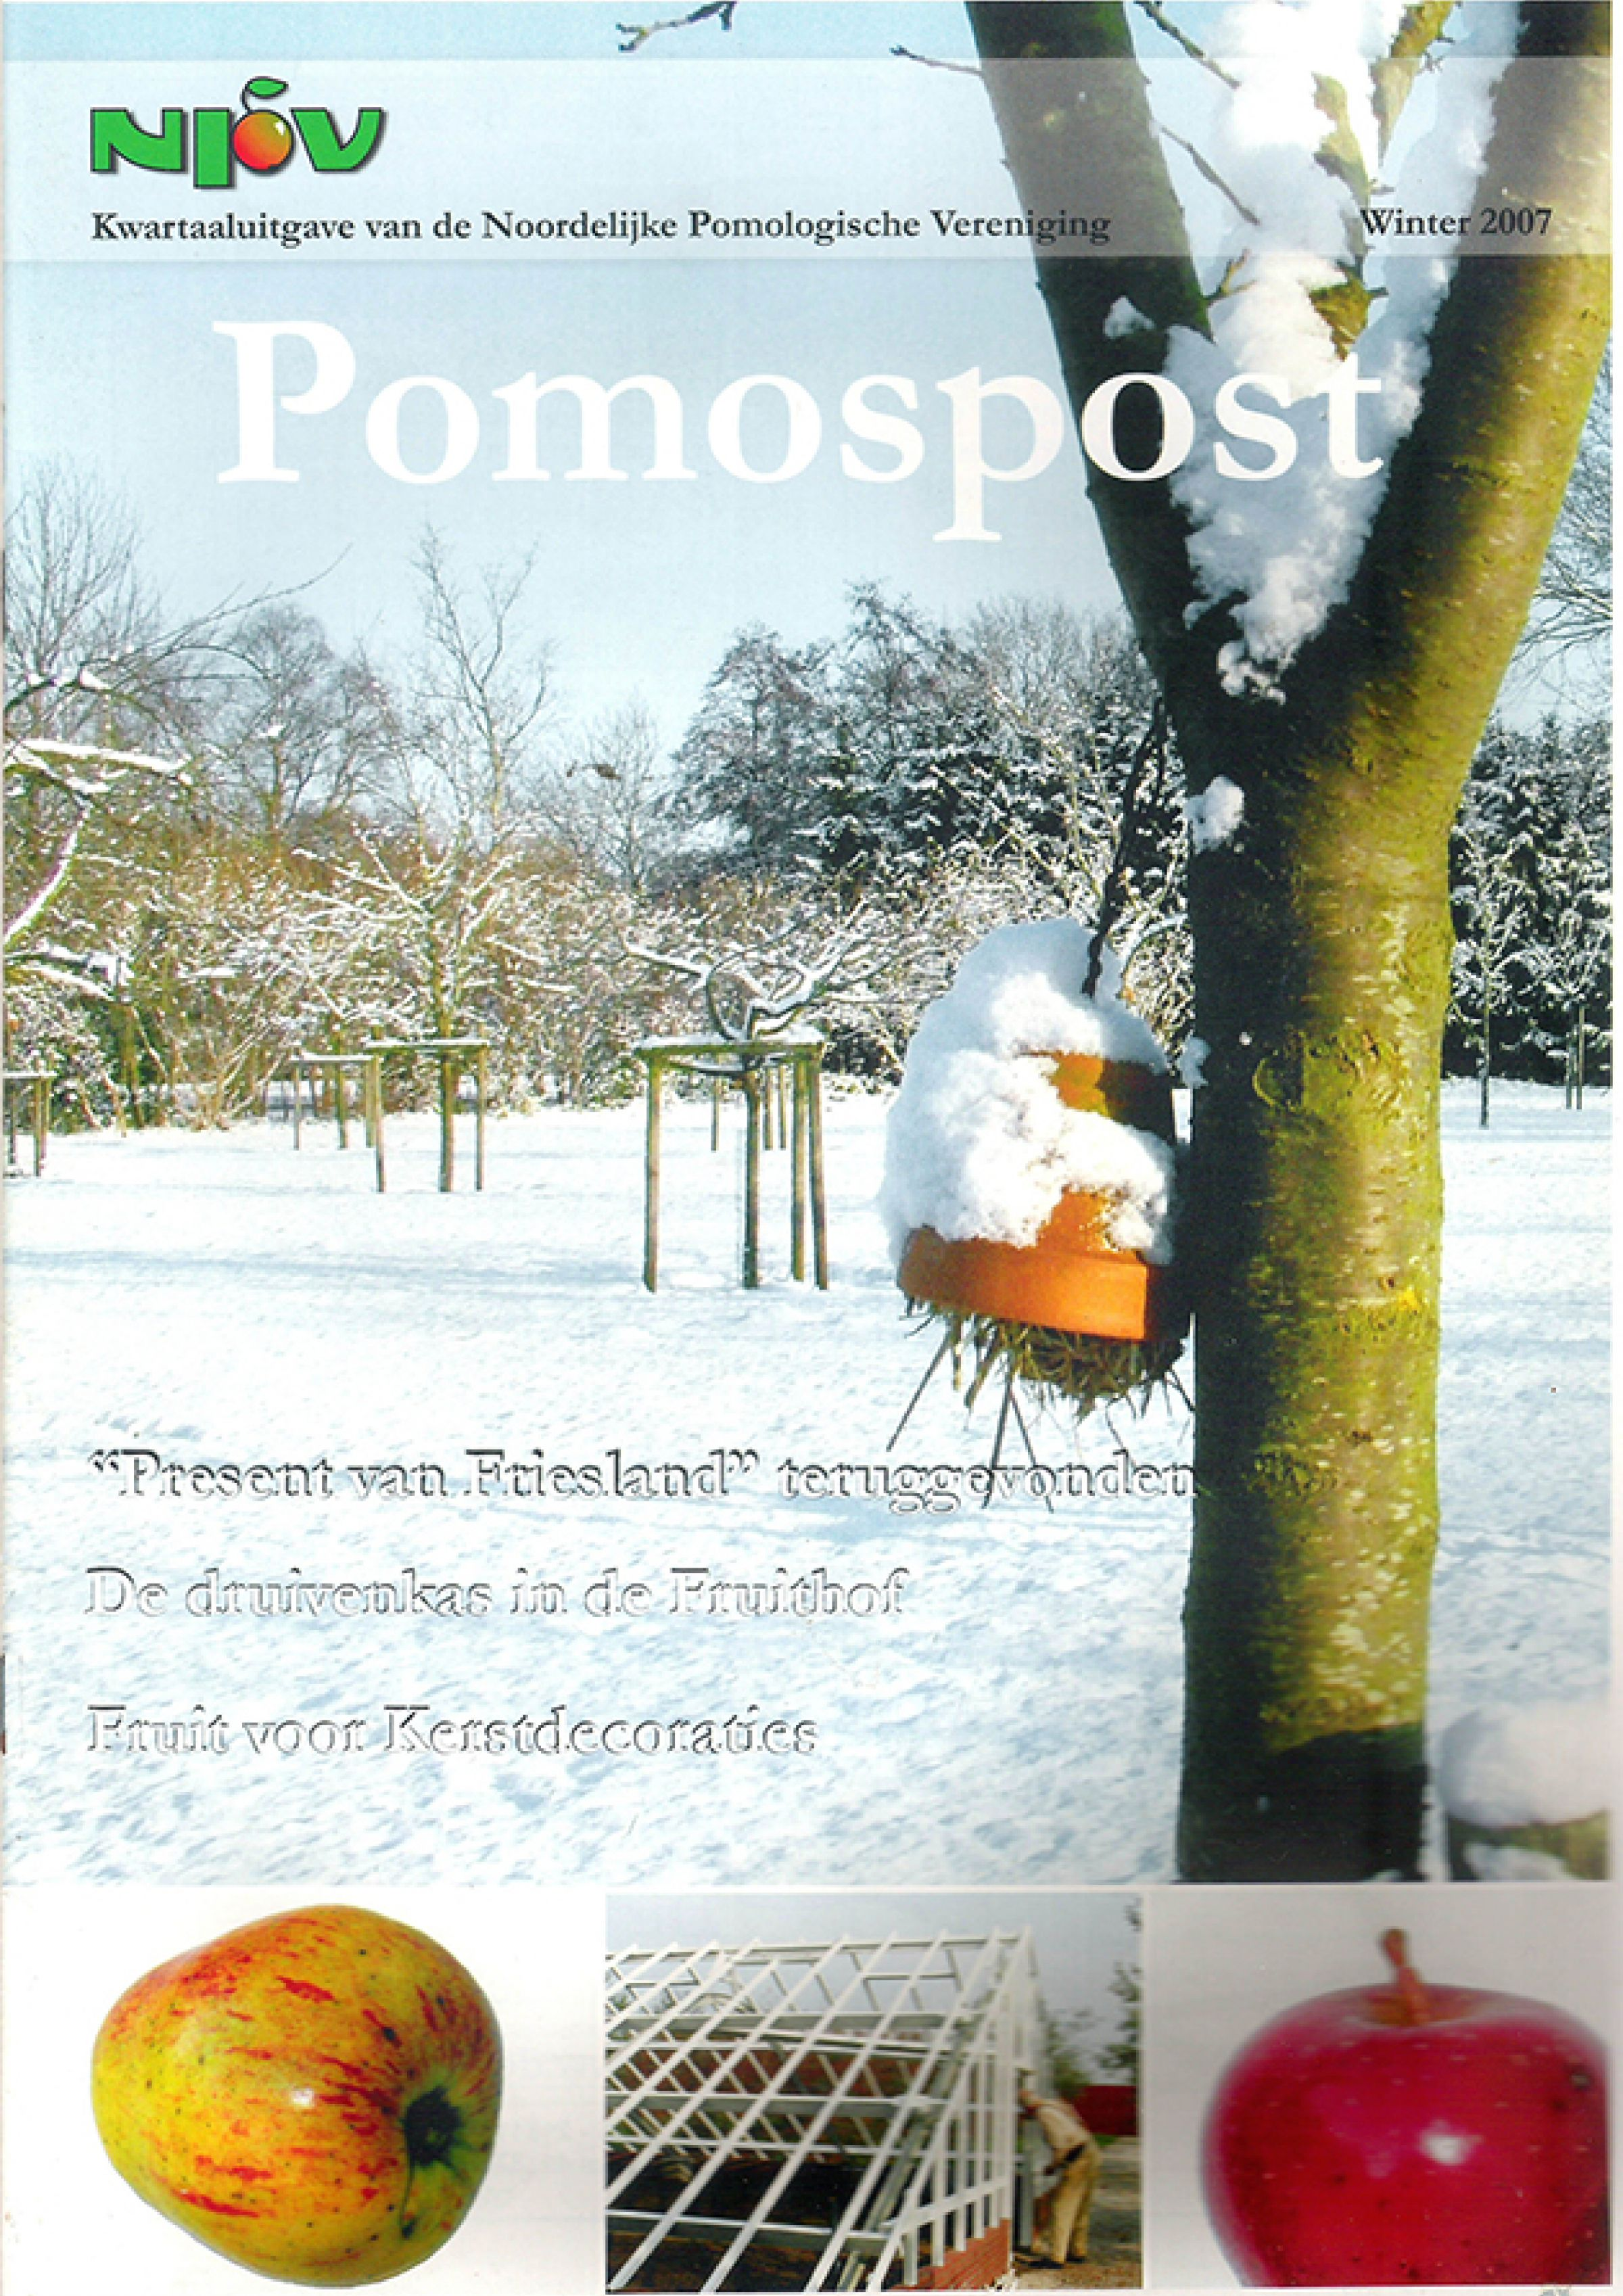 Pomospost 2007 winter 900